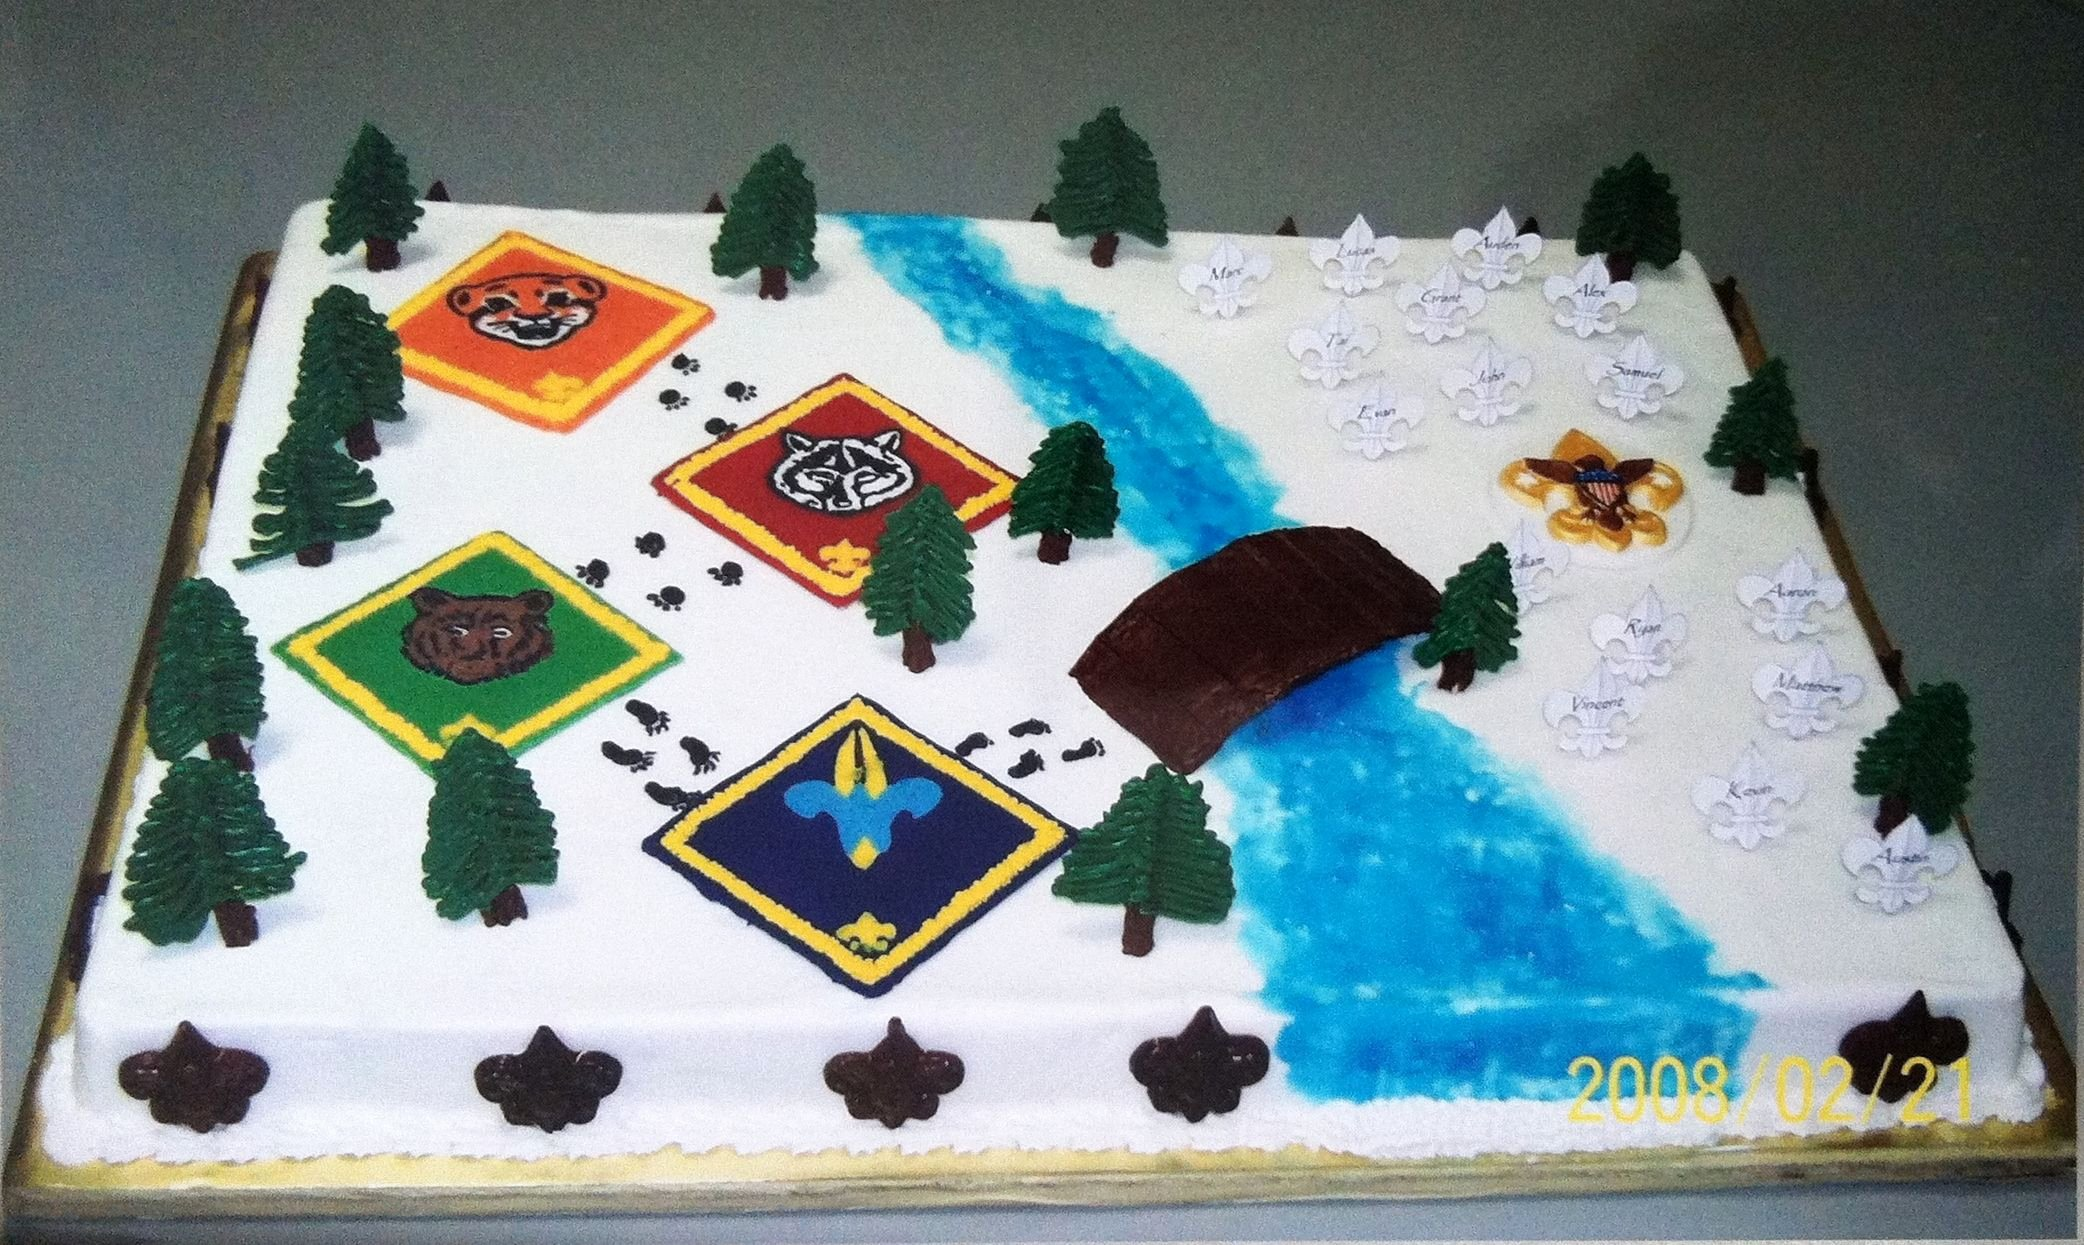 Simple Arrow Of Light Ceremony Ideas Fresh Cub Scout Crossover Cake Kmb Confections